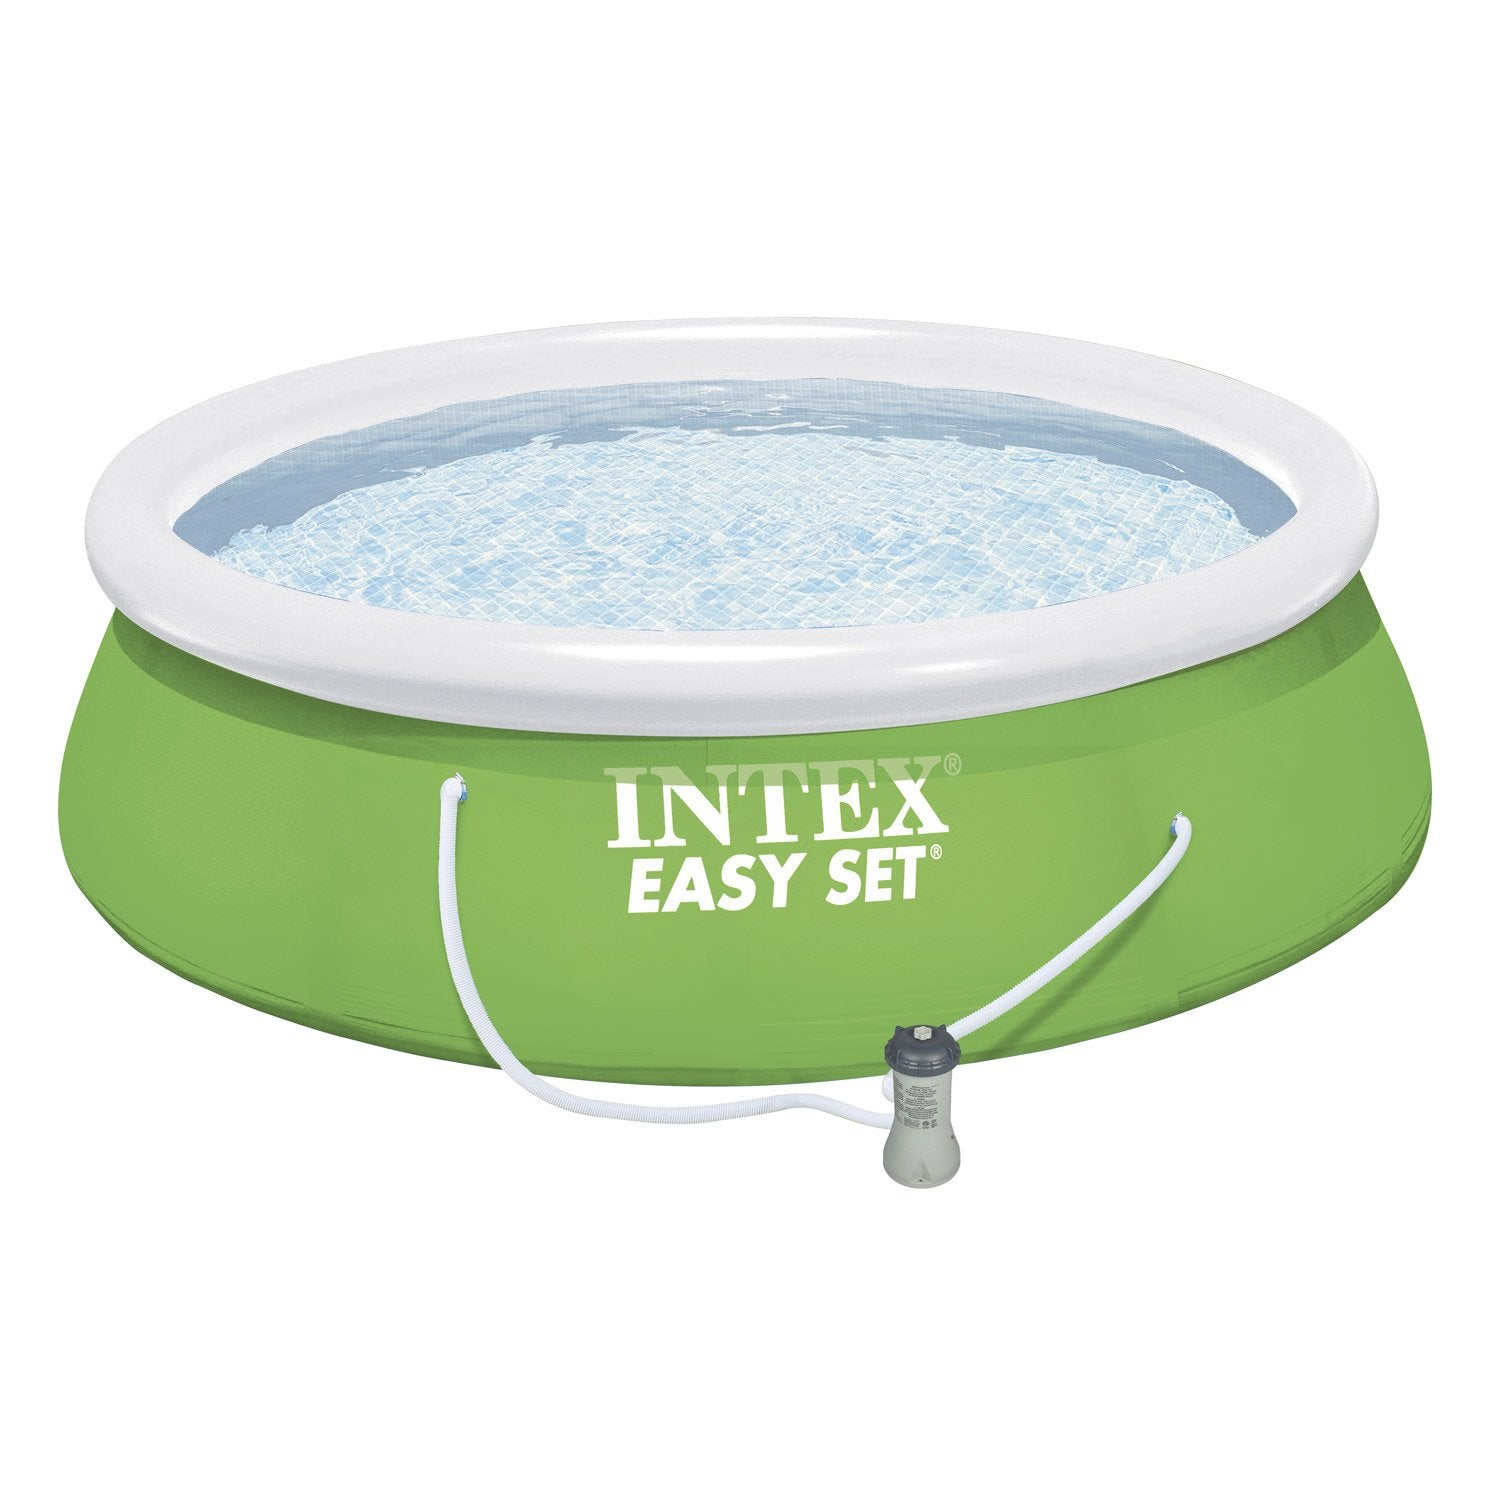 Piscine hors sol autoportante gonflable suppression intex for Piscine intex hors sol